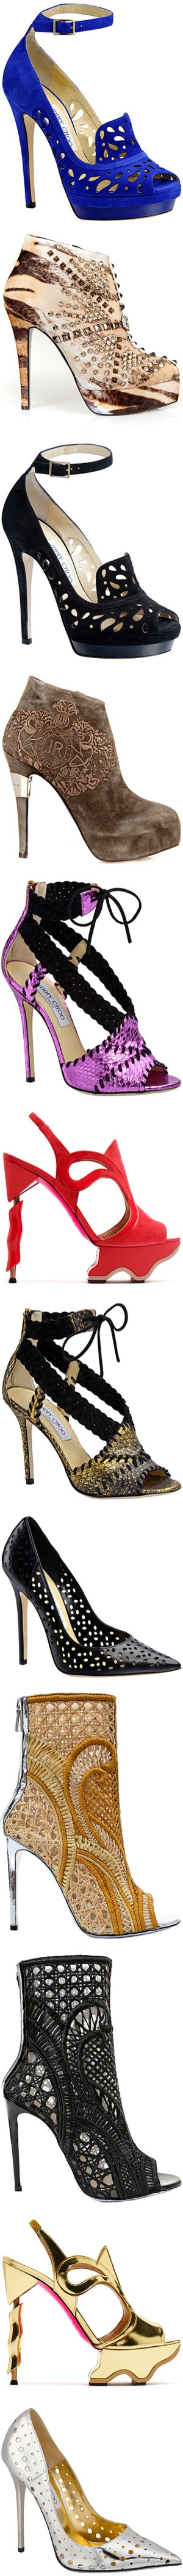 """""""Shoes to covet this season"""" by lidia-solymosi on Polyvore"""